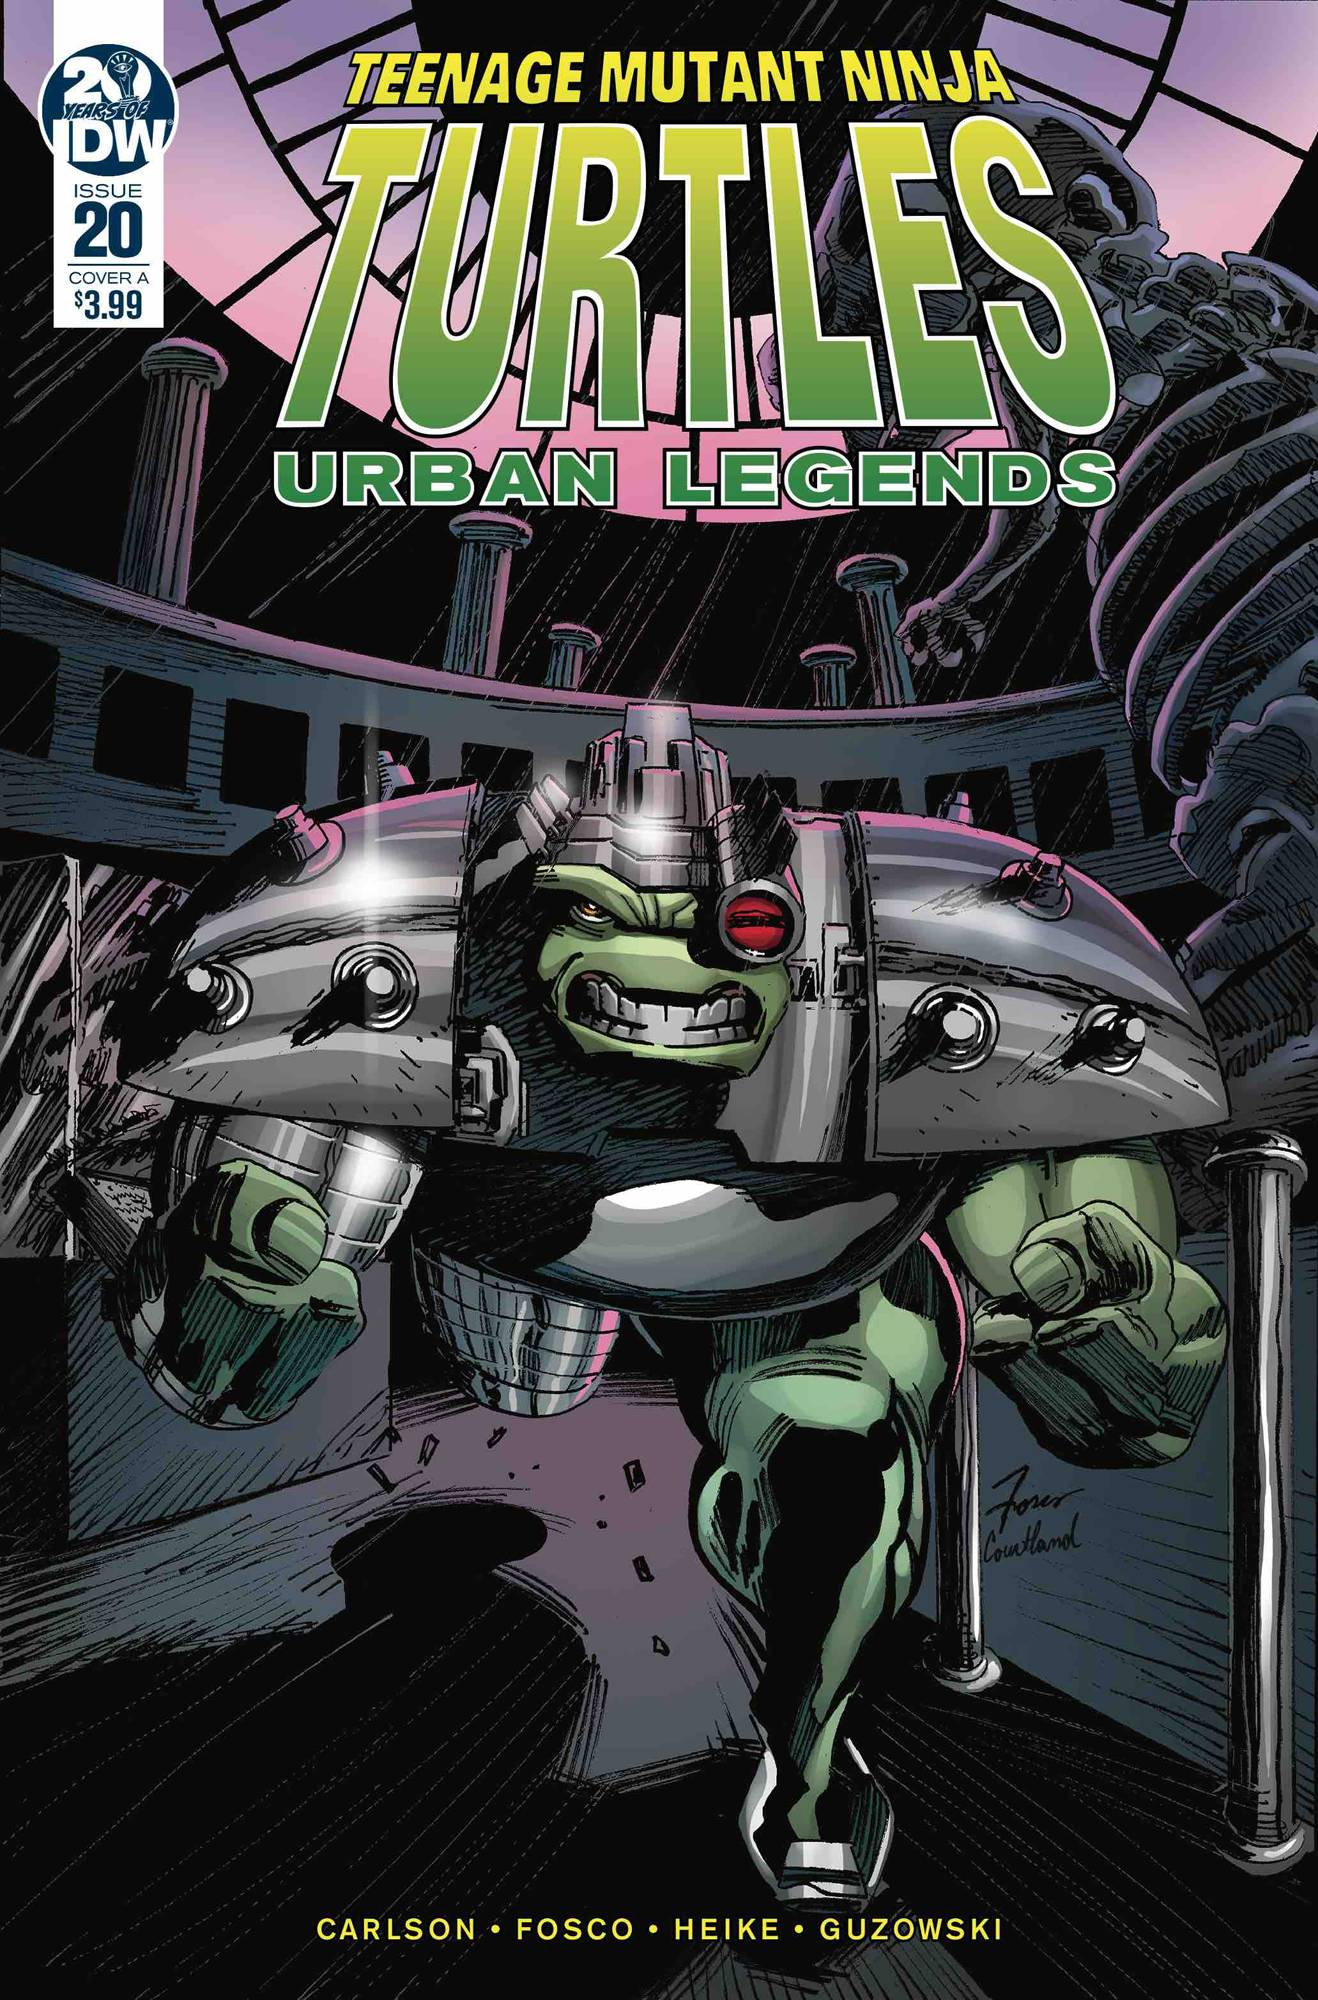 Teenage Mutant Ninja Turtles: Urban Legends #20 (2020)